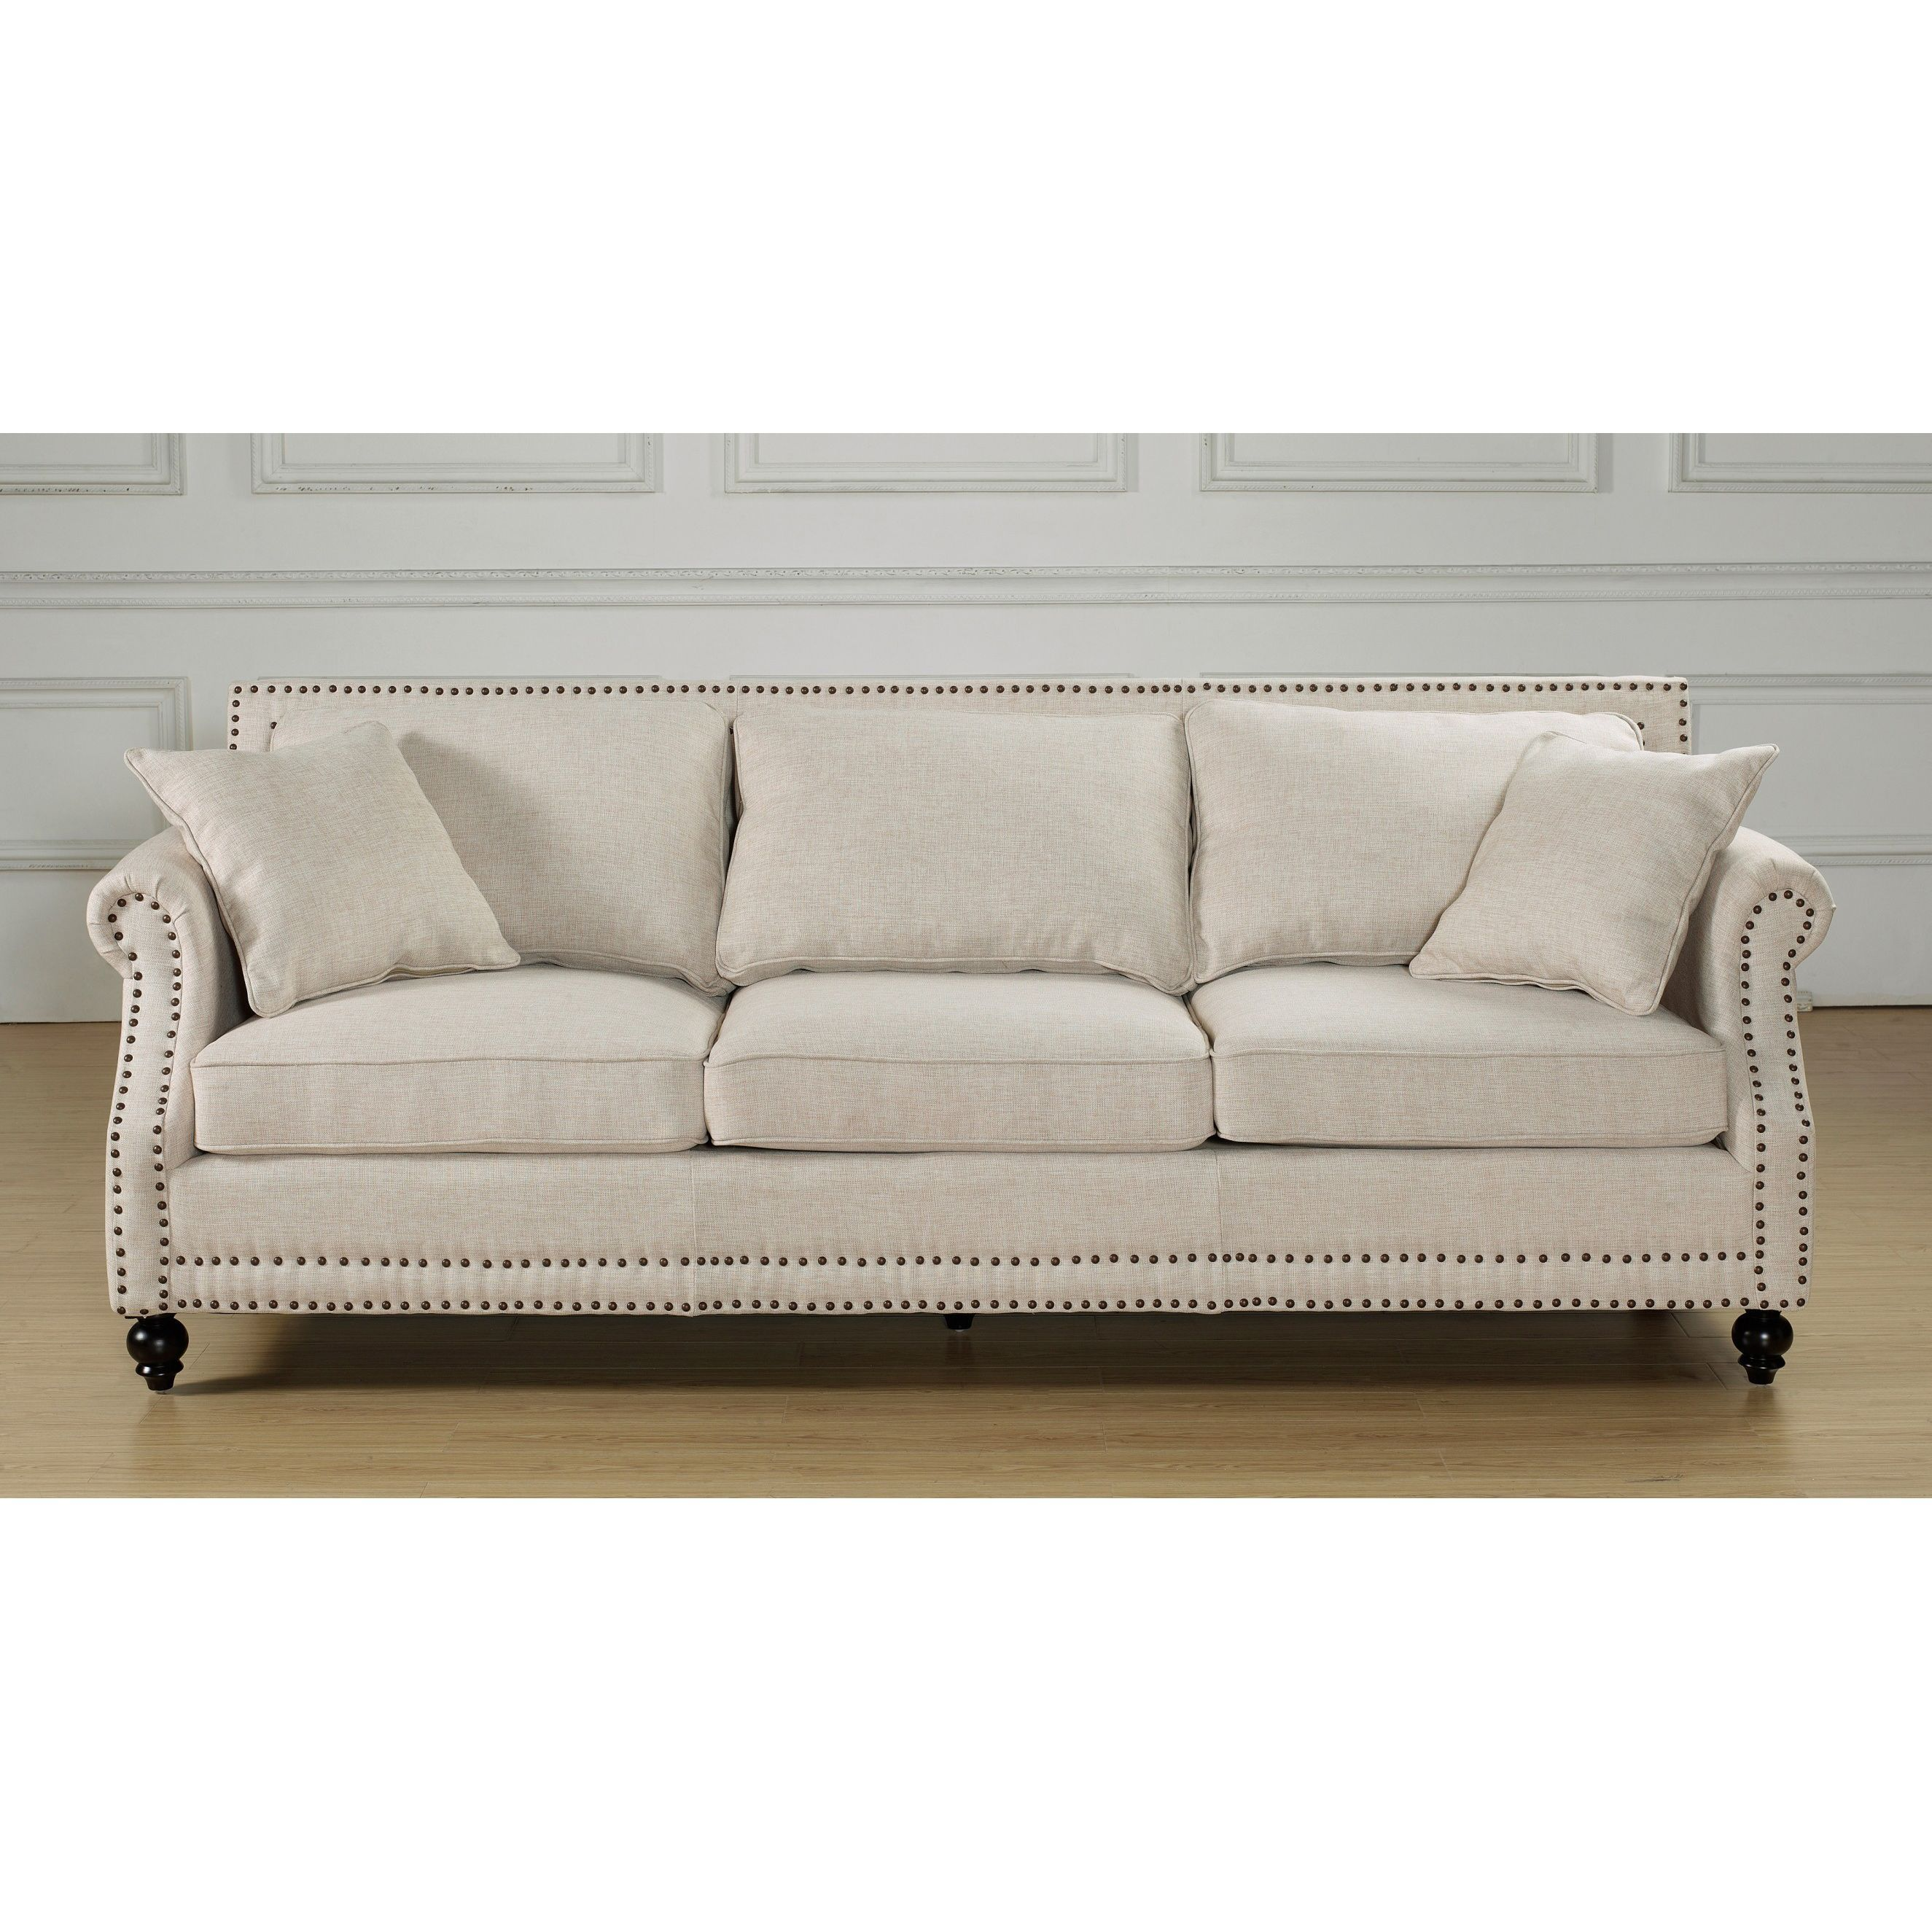 Overstock Com Online Shopping Bedding Furniture Electronics Jewelry Clothing More Linen Sofa Sofa Sale Sofa